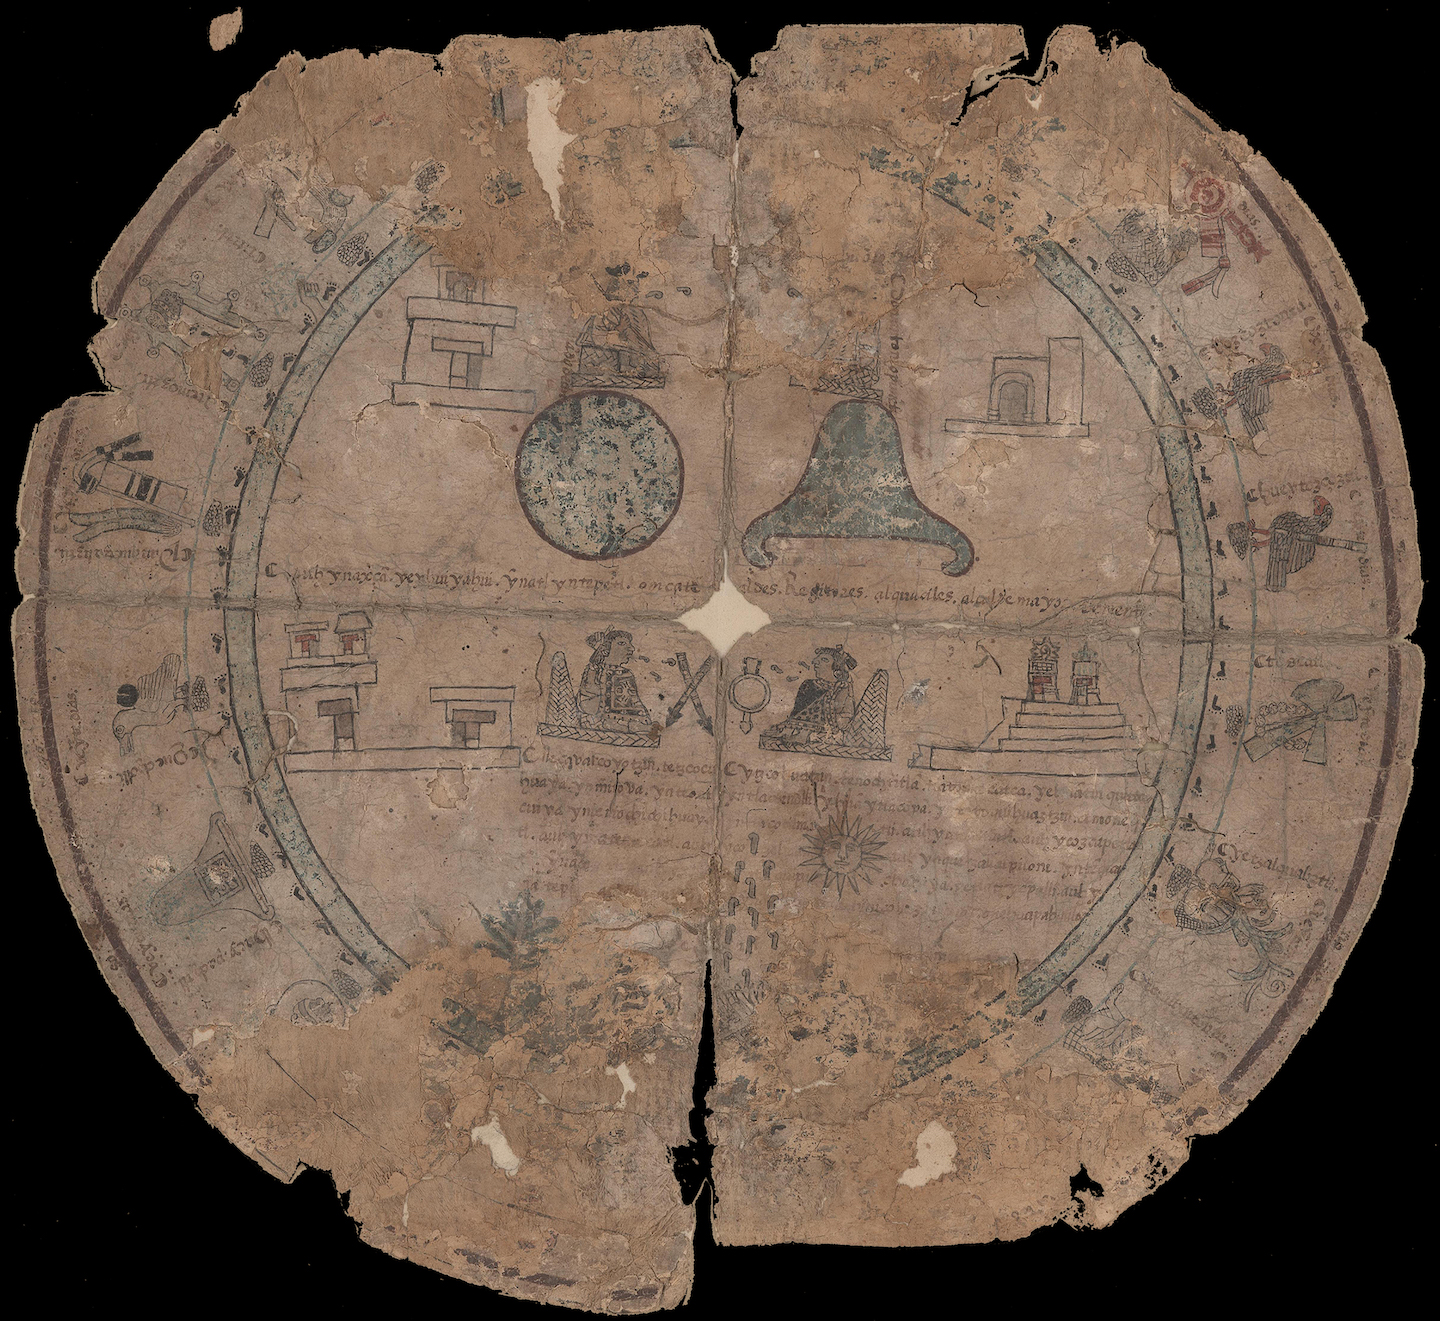 circular manuscript calendar on maguey fiber with symbolic representation of the months and day of the Aztec year with explanatory text in Nahuatl language transcribed into European script